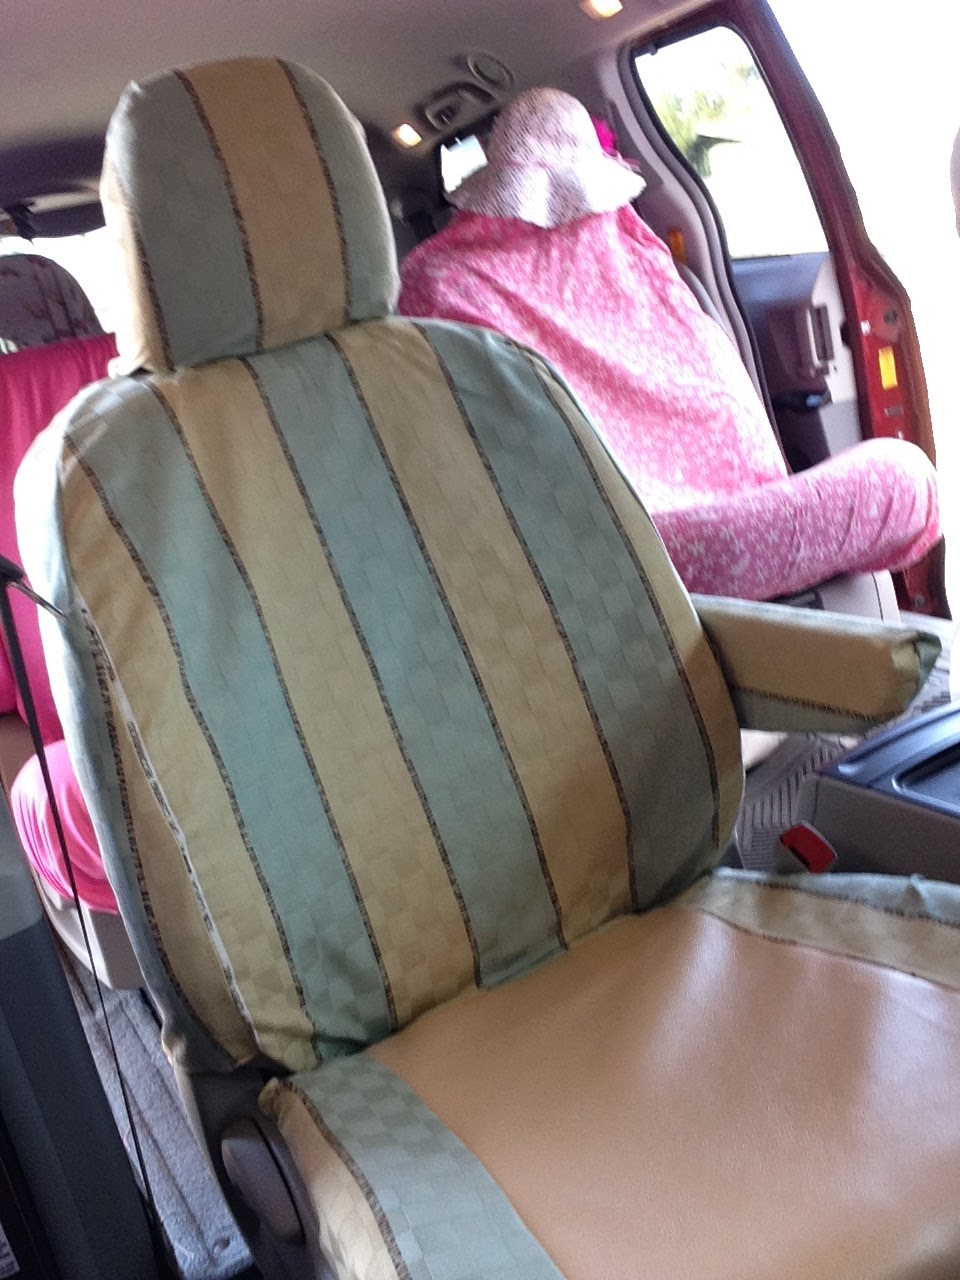 It Took Me Five Seat Covers To Somewhat Perfected Of How Make Onebut I Did And Cost My Time Just Fabric That Purchased Years Ago